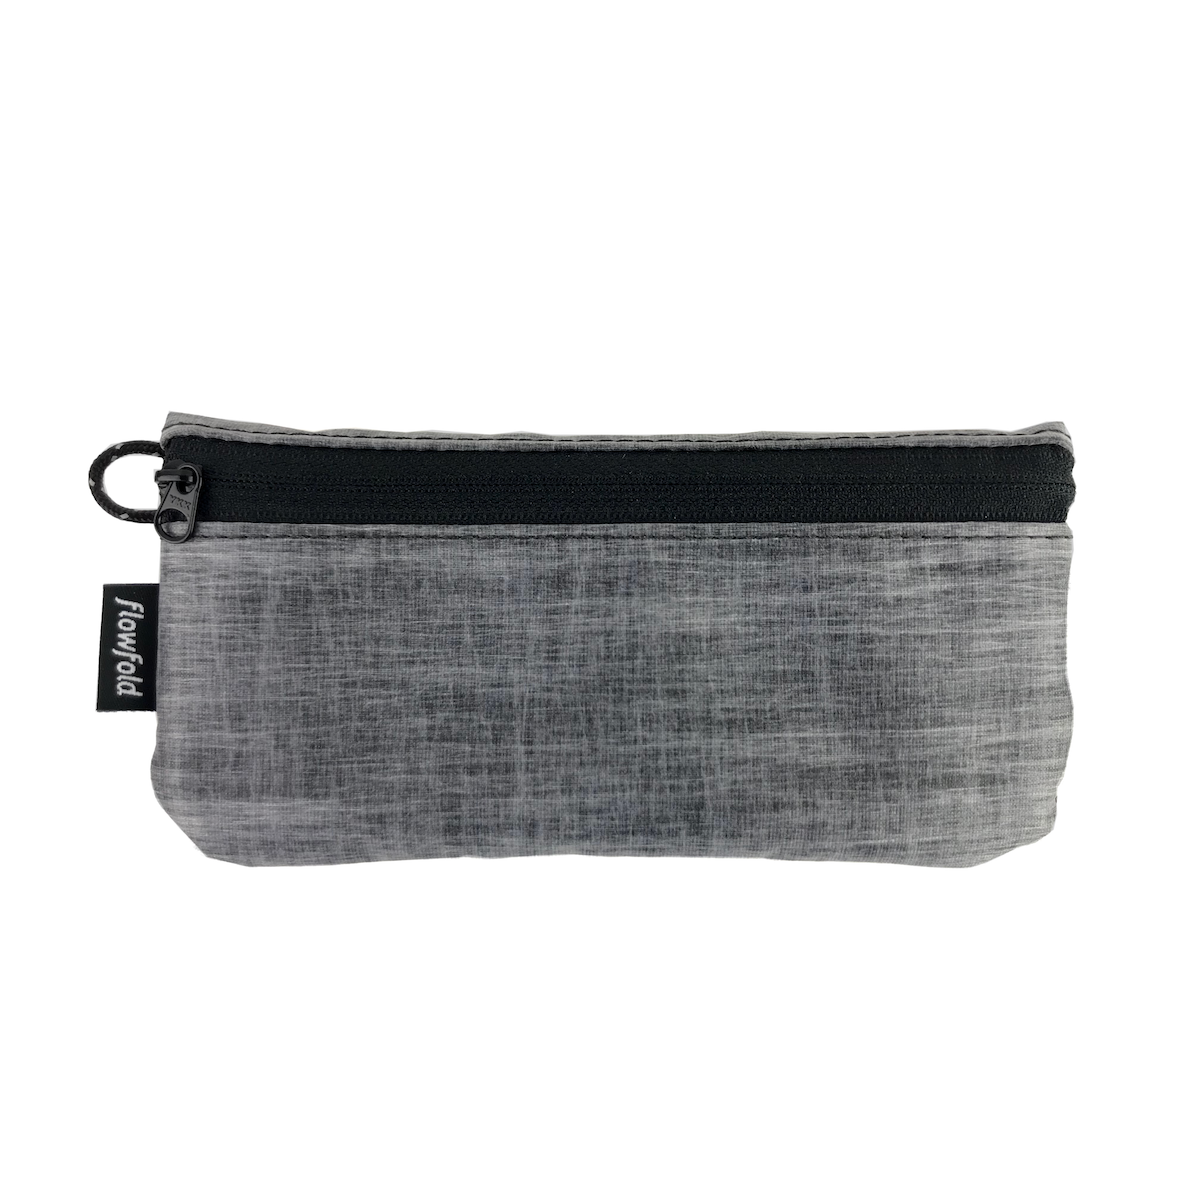 Creater Zipper Pouch Wallet - Heather Grey